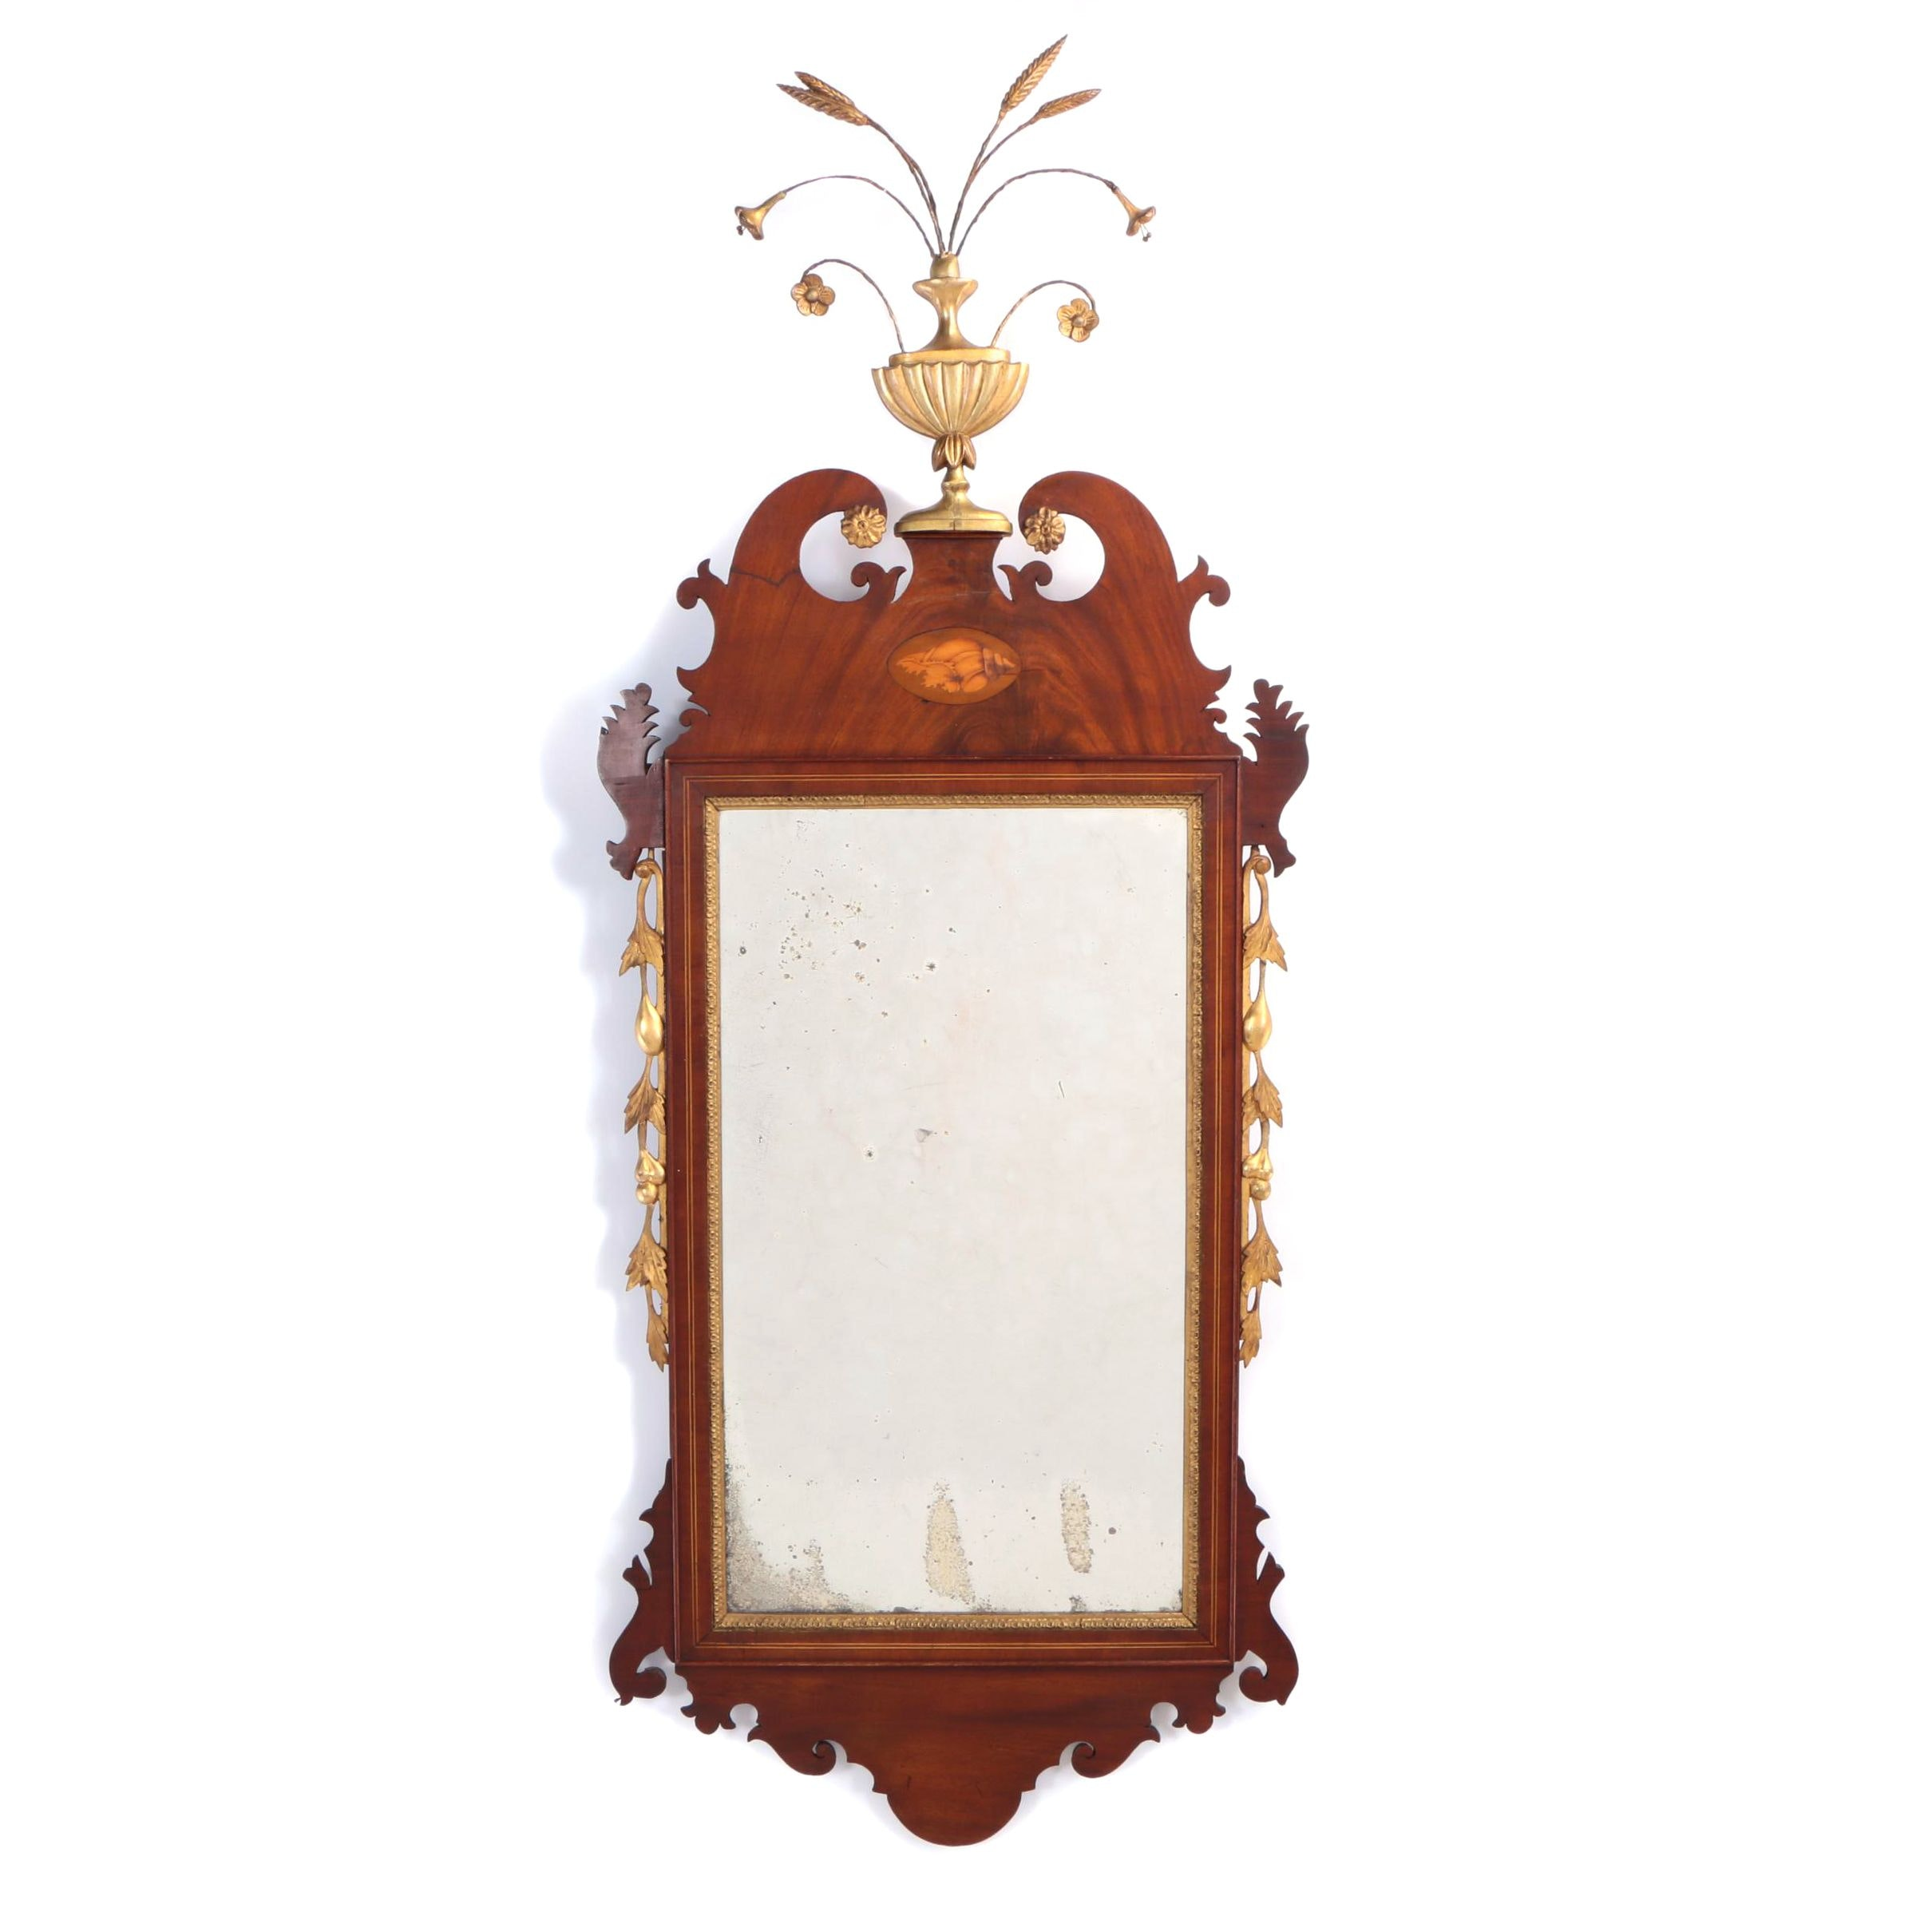 George III Style Mahogany, Marquetry, and Parcel-Gilt Fret-Carved Mirror